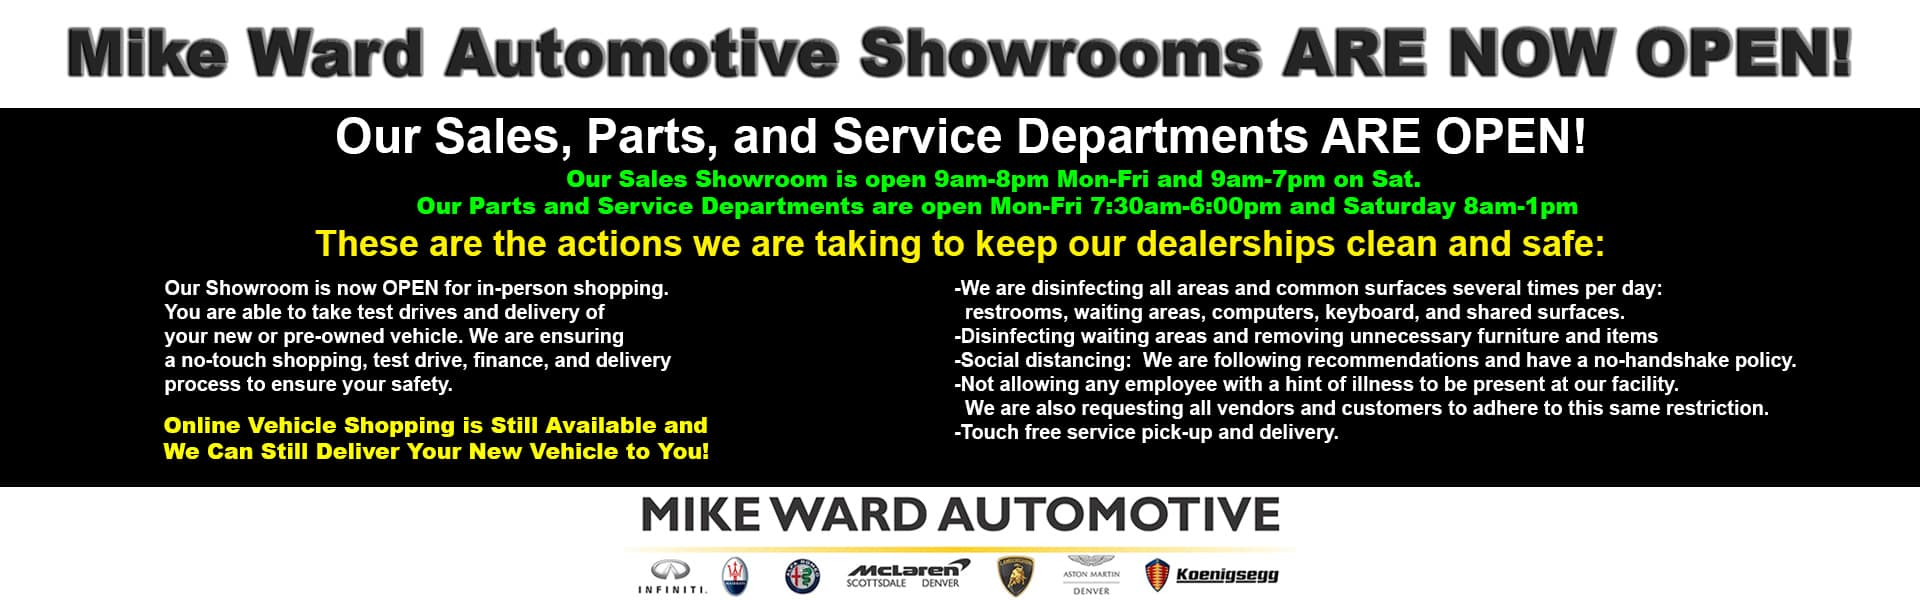 Mike Ward Automotive Dealerships are OPEN!